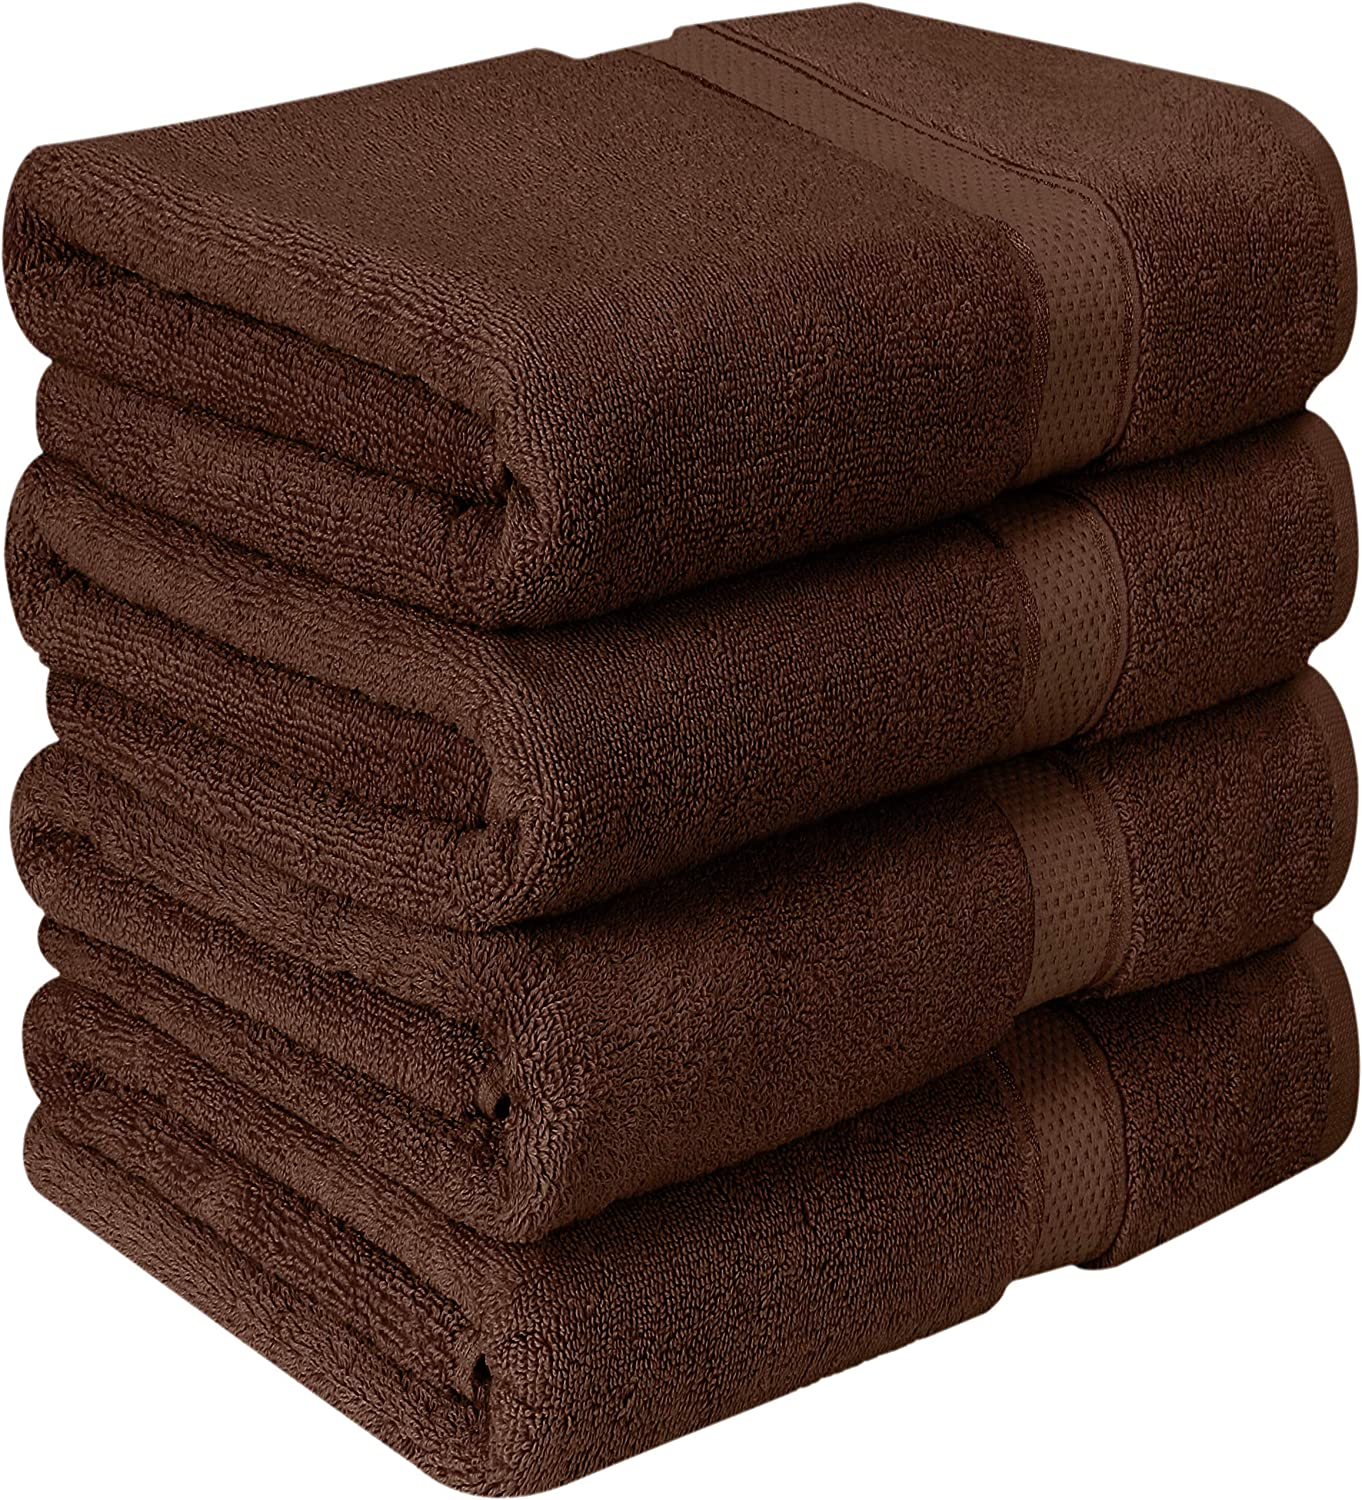 - 600 GSM 100/% Ring Spun Cotton Highly Absorbent and Quick Dry Extra Large Bath Towel Super Soft Hotel Quality Towel Utopia Towels 90 x 180 cm, 2 Pack Premium Jumbo Bath Sheet Pink